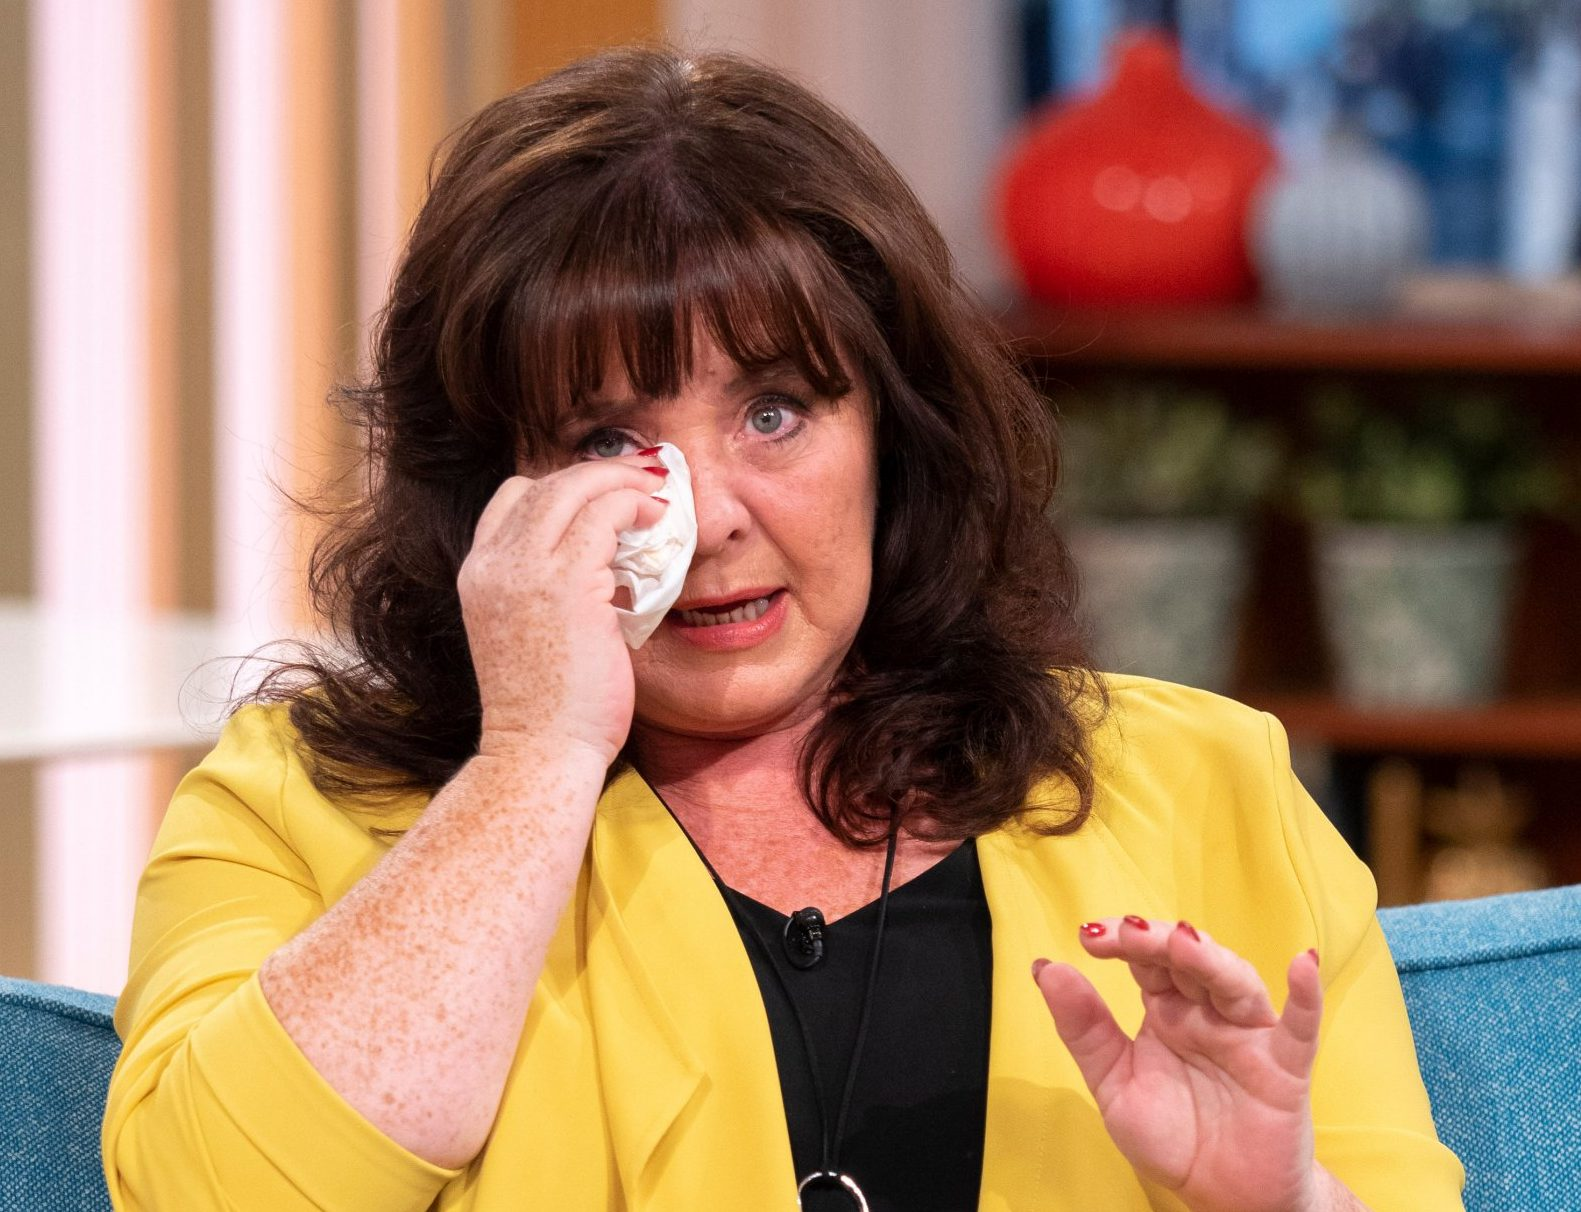 Coleen Nolan breaks down in tears as she opens up on Kim Woodburn fight: 'She needs help'